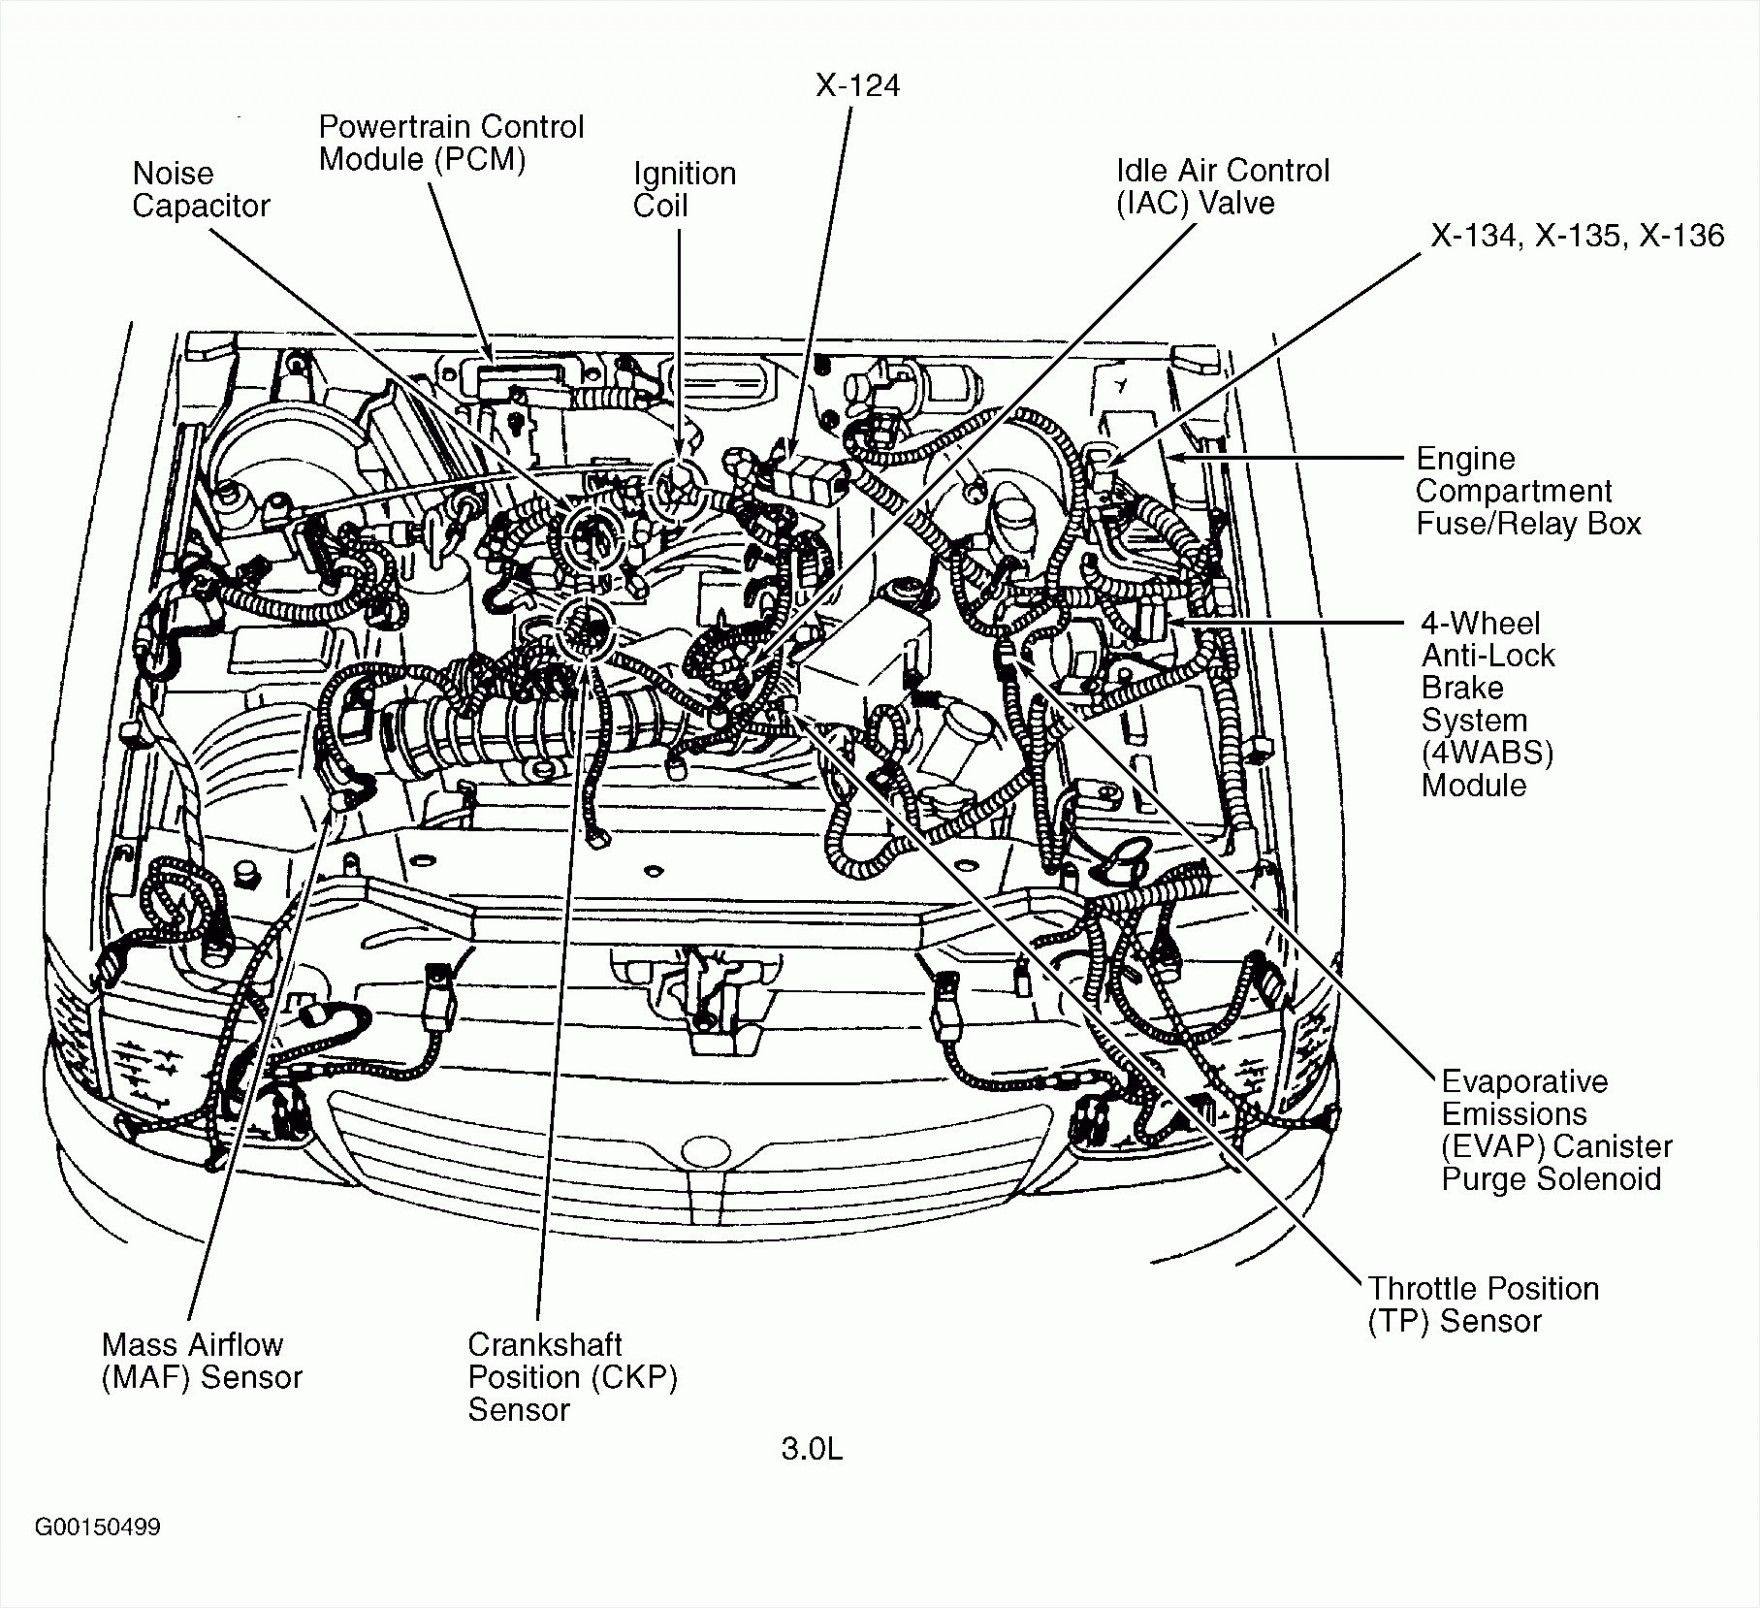 E7 Engine Bay Diagram Di 2020 Dengan Gambar Taurus Ford